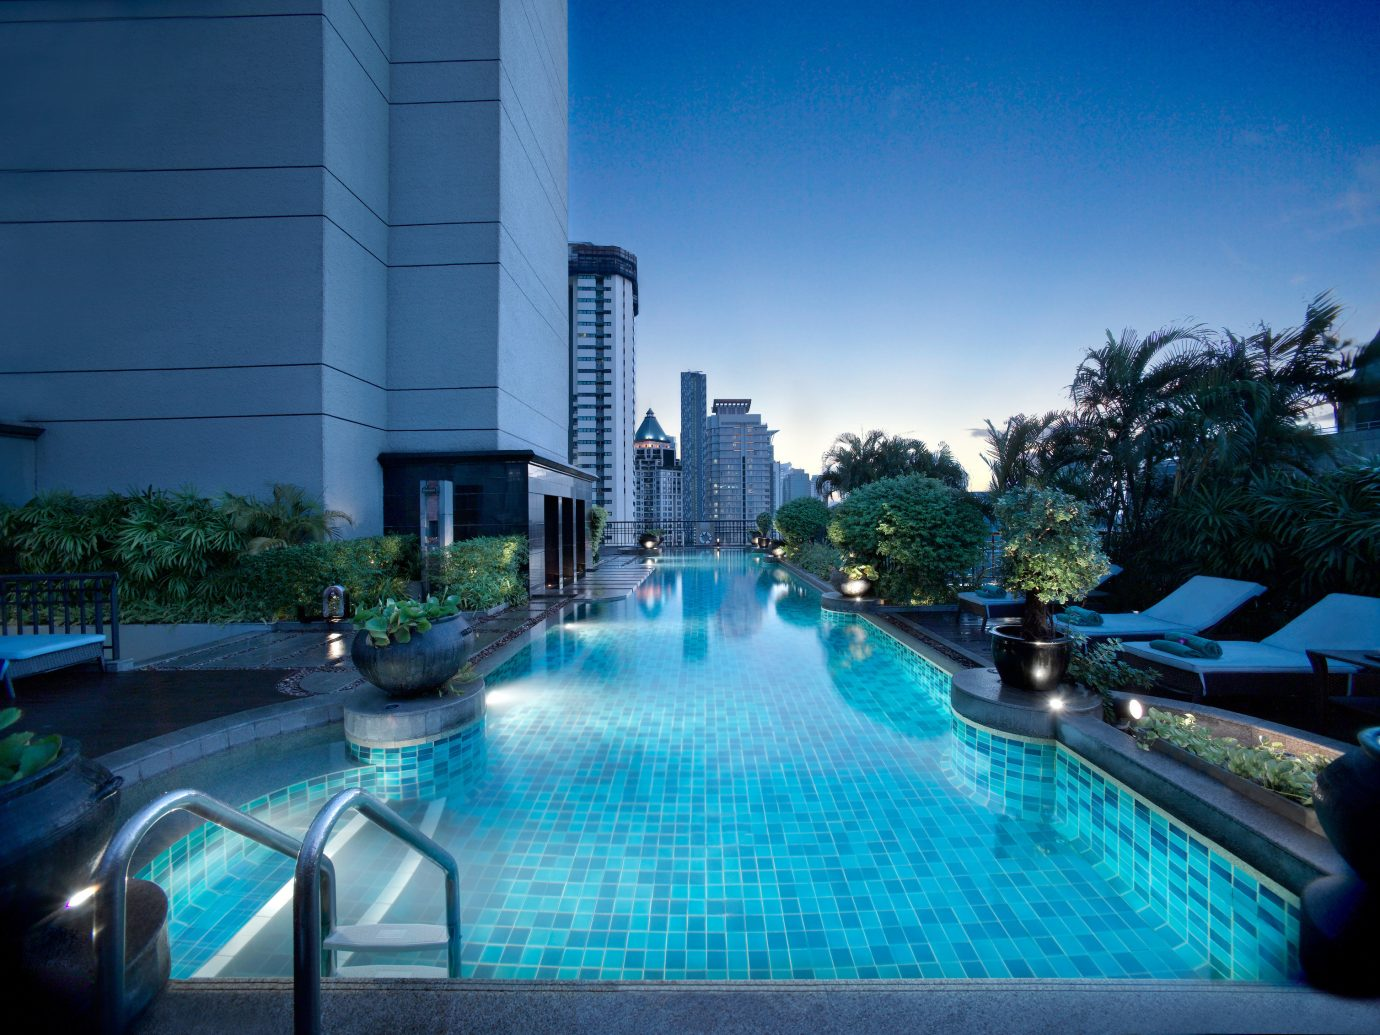 Hotels outdoor swimming pool leisure condominium reflecting pool estate reflection Resort